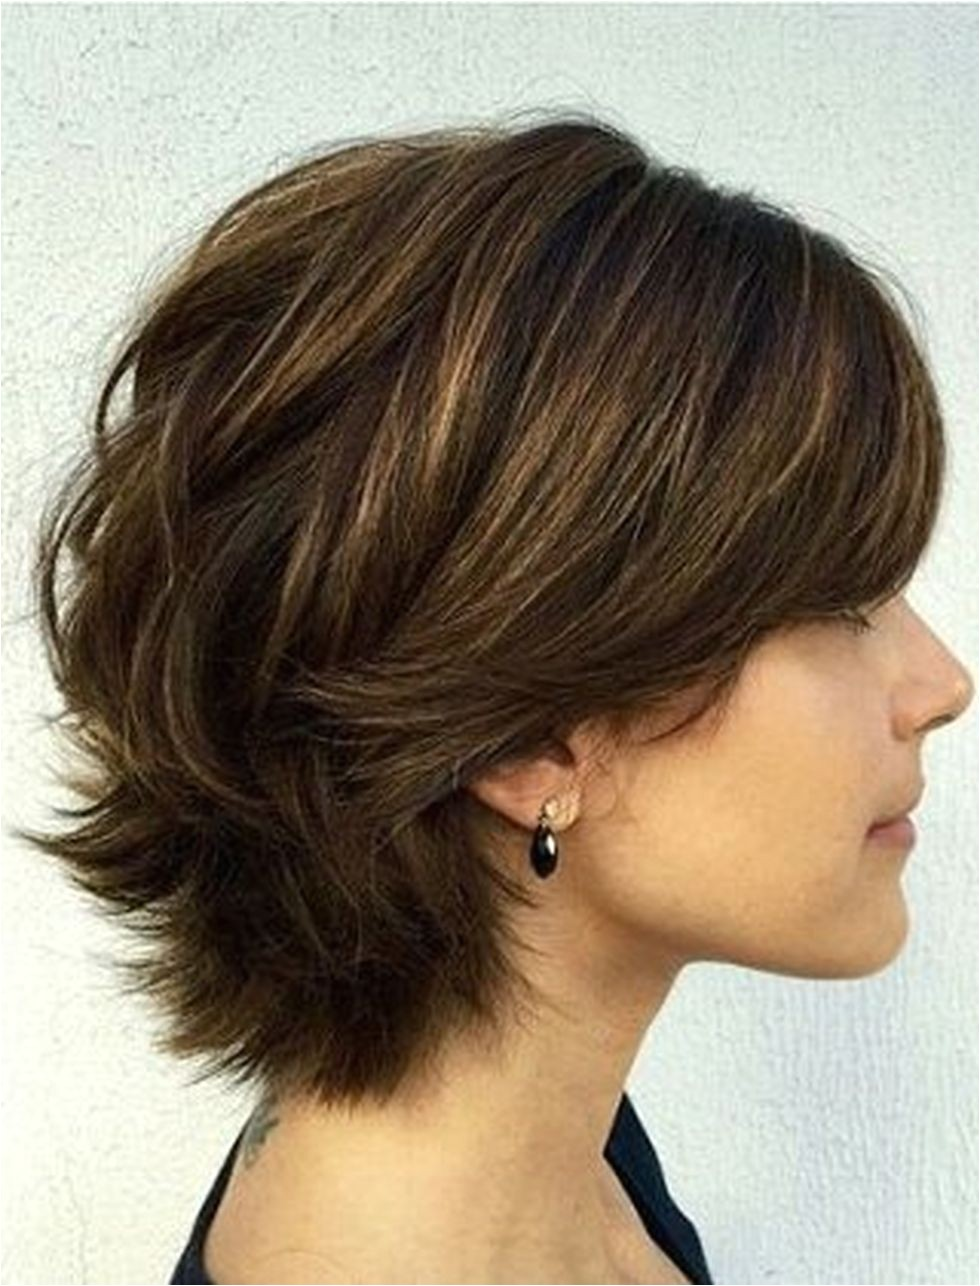 Fabulous over 50 short hairstyle ideas 23